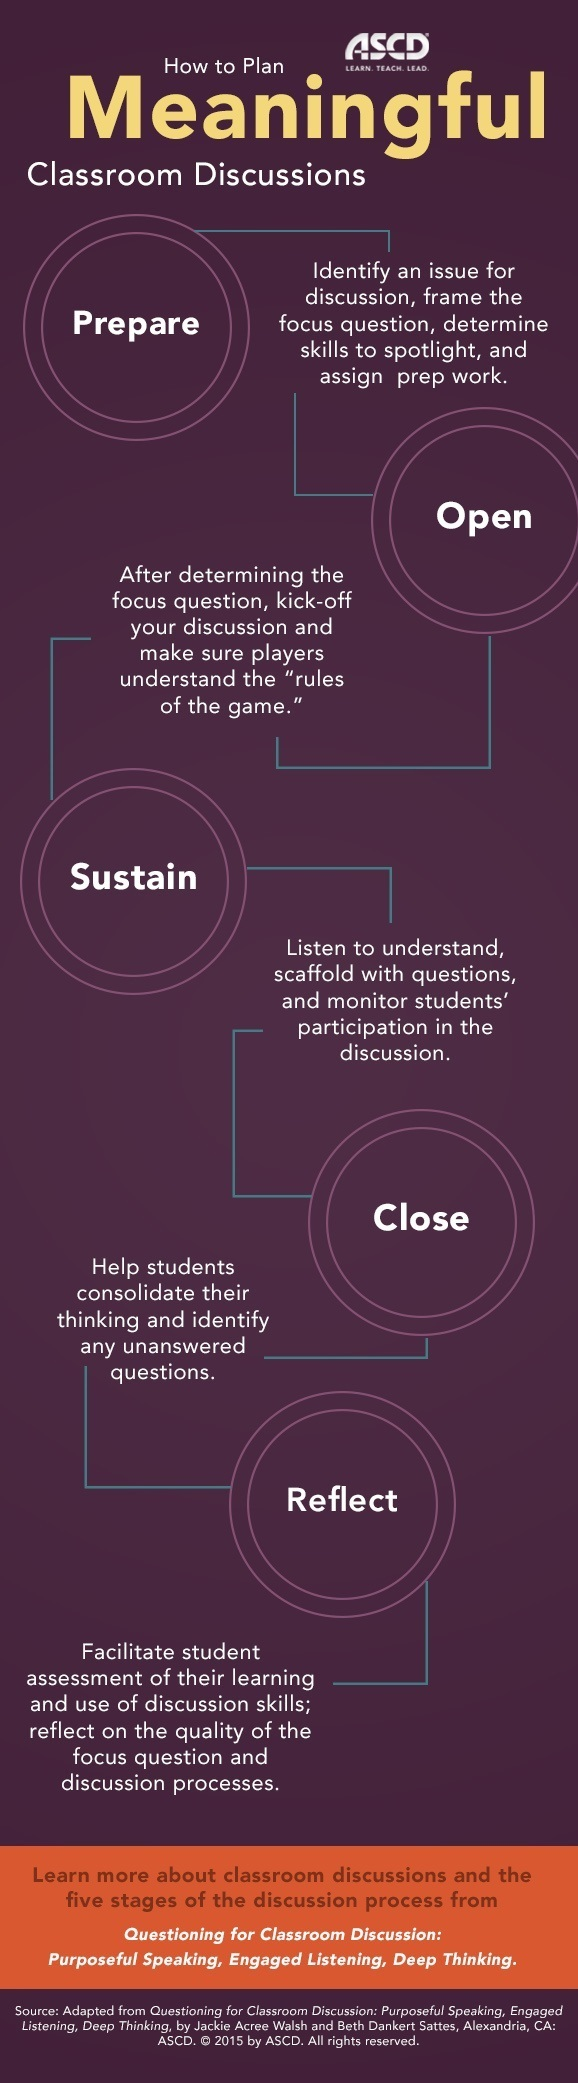 How to Plan Meaningful Classroom Discussions Infographic